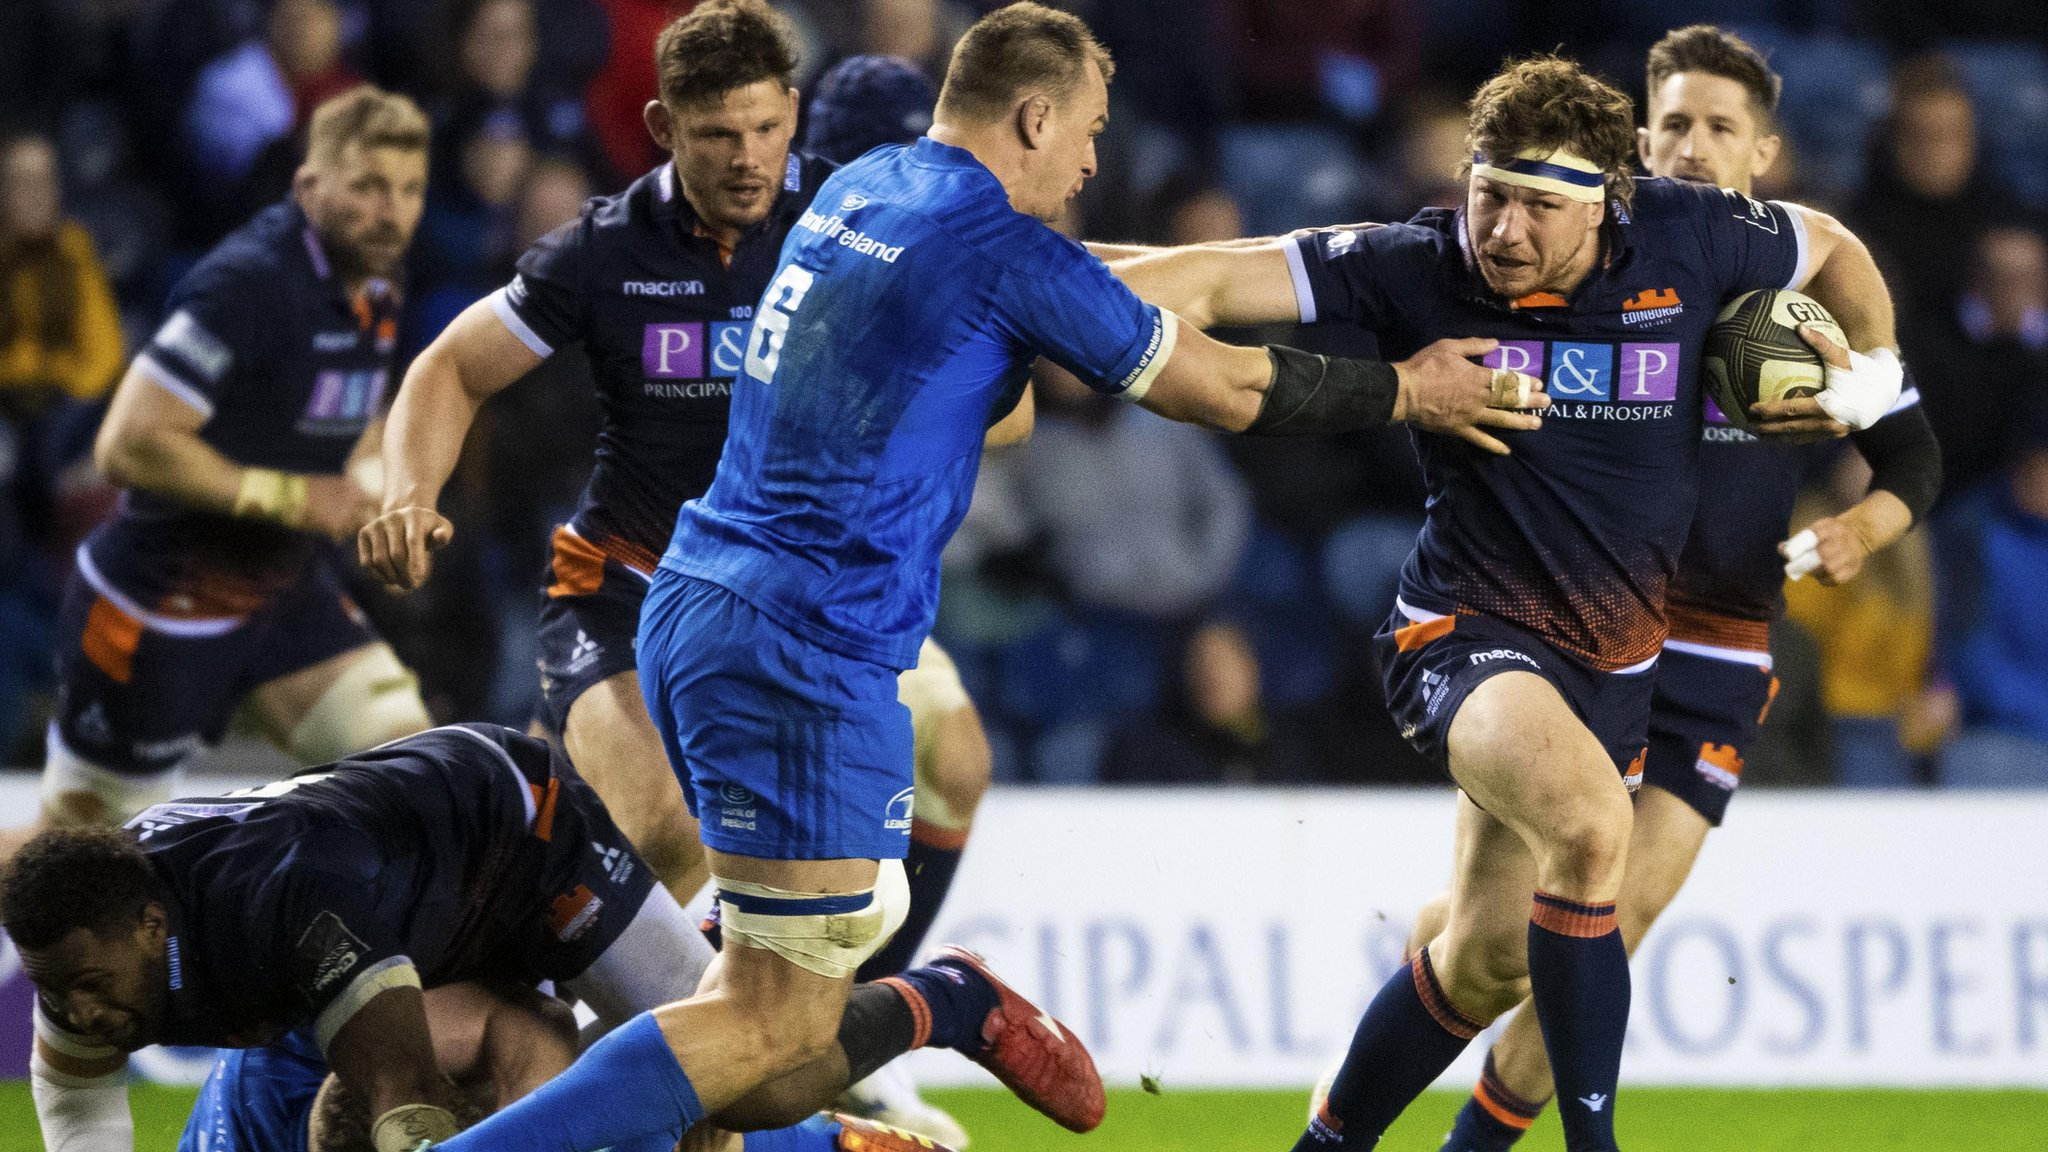 Edinburgh beat Leinster to boost play-off hopes